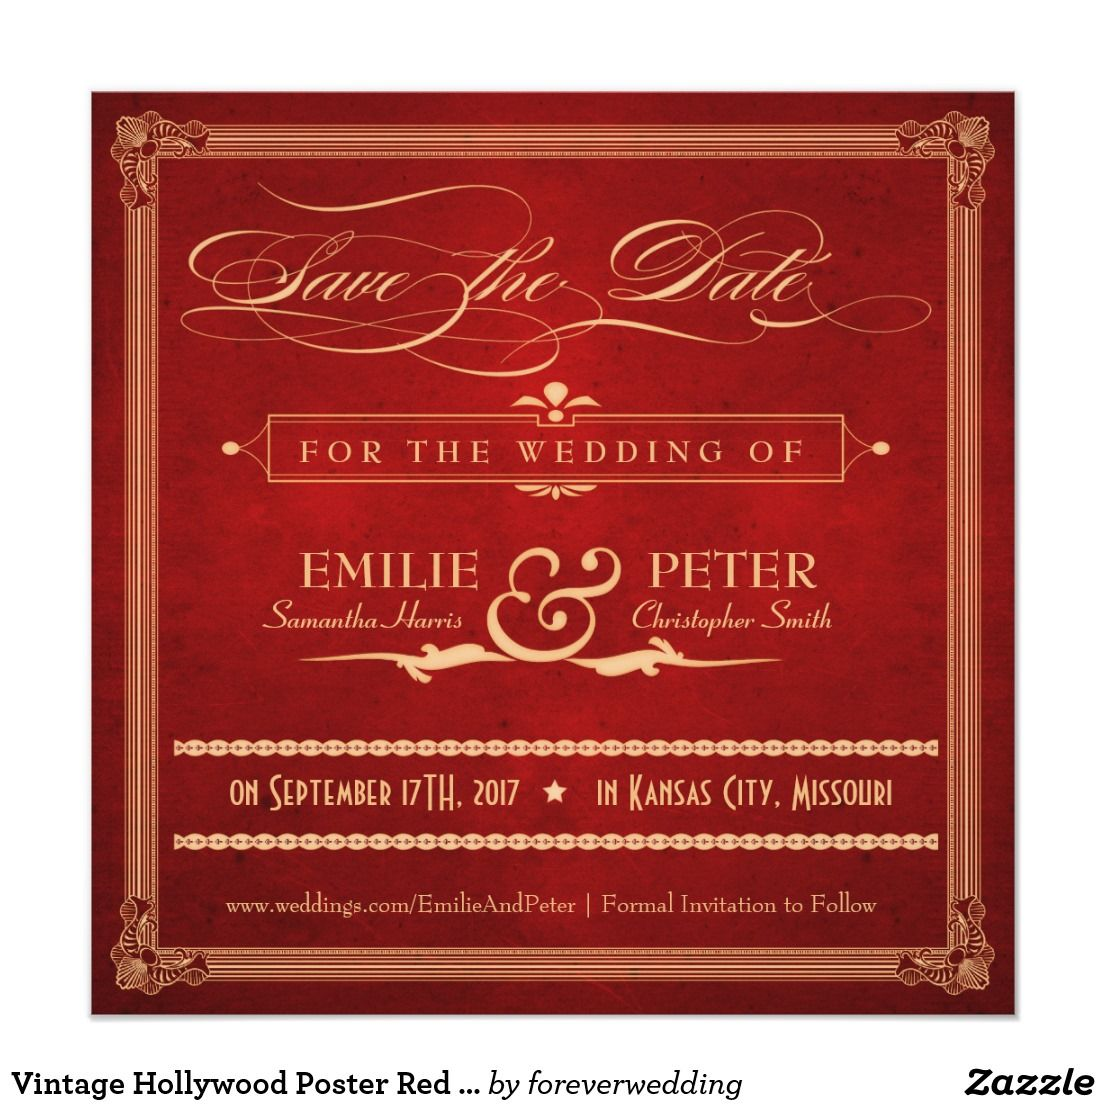 Vintage Hollywood Poster Red & Gold Save the Date | ART DECO WEDDING ...